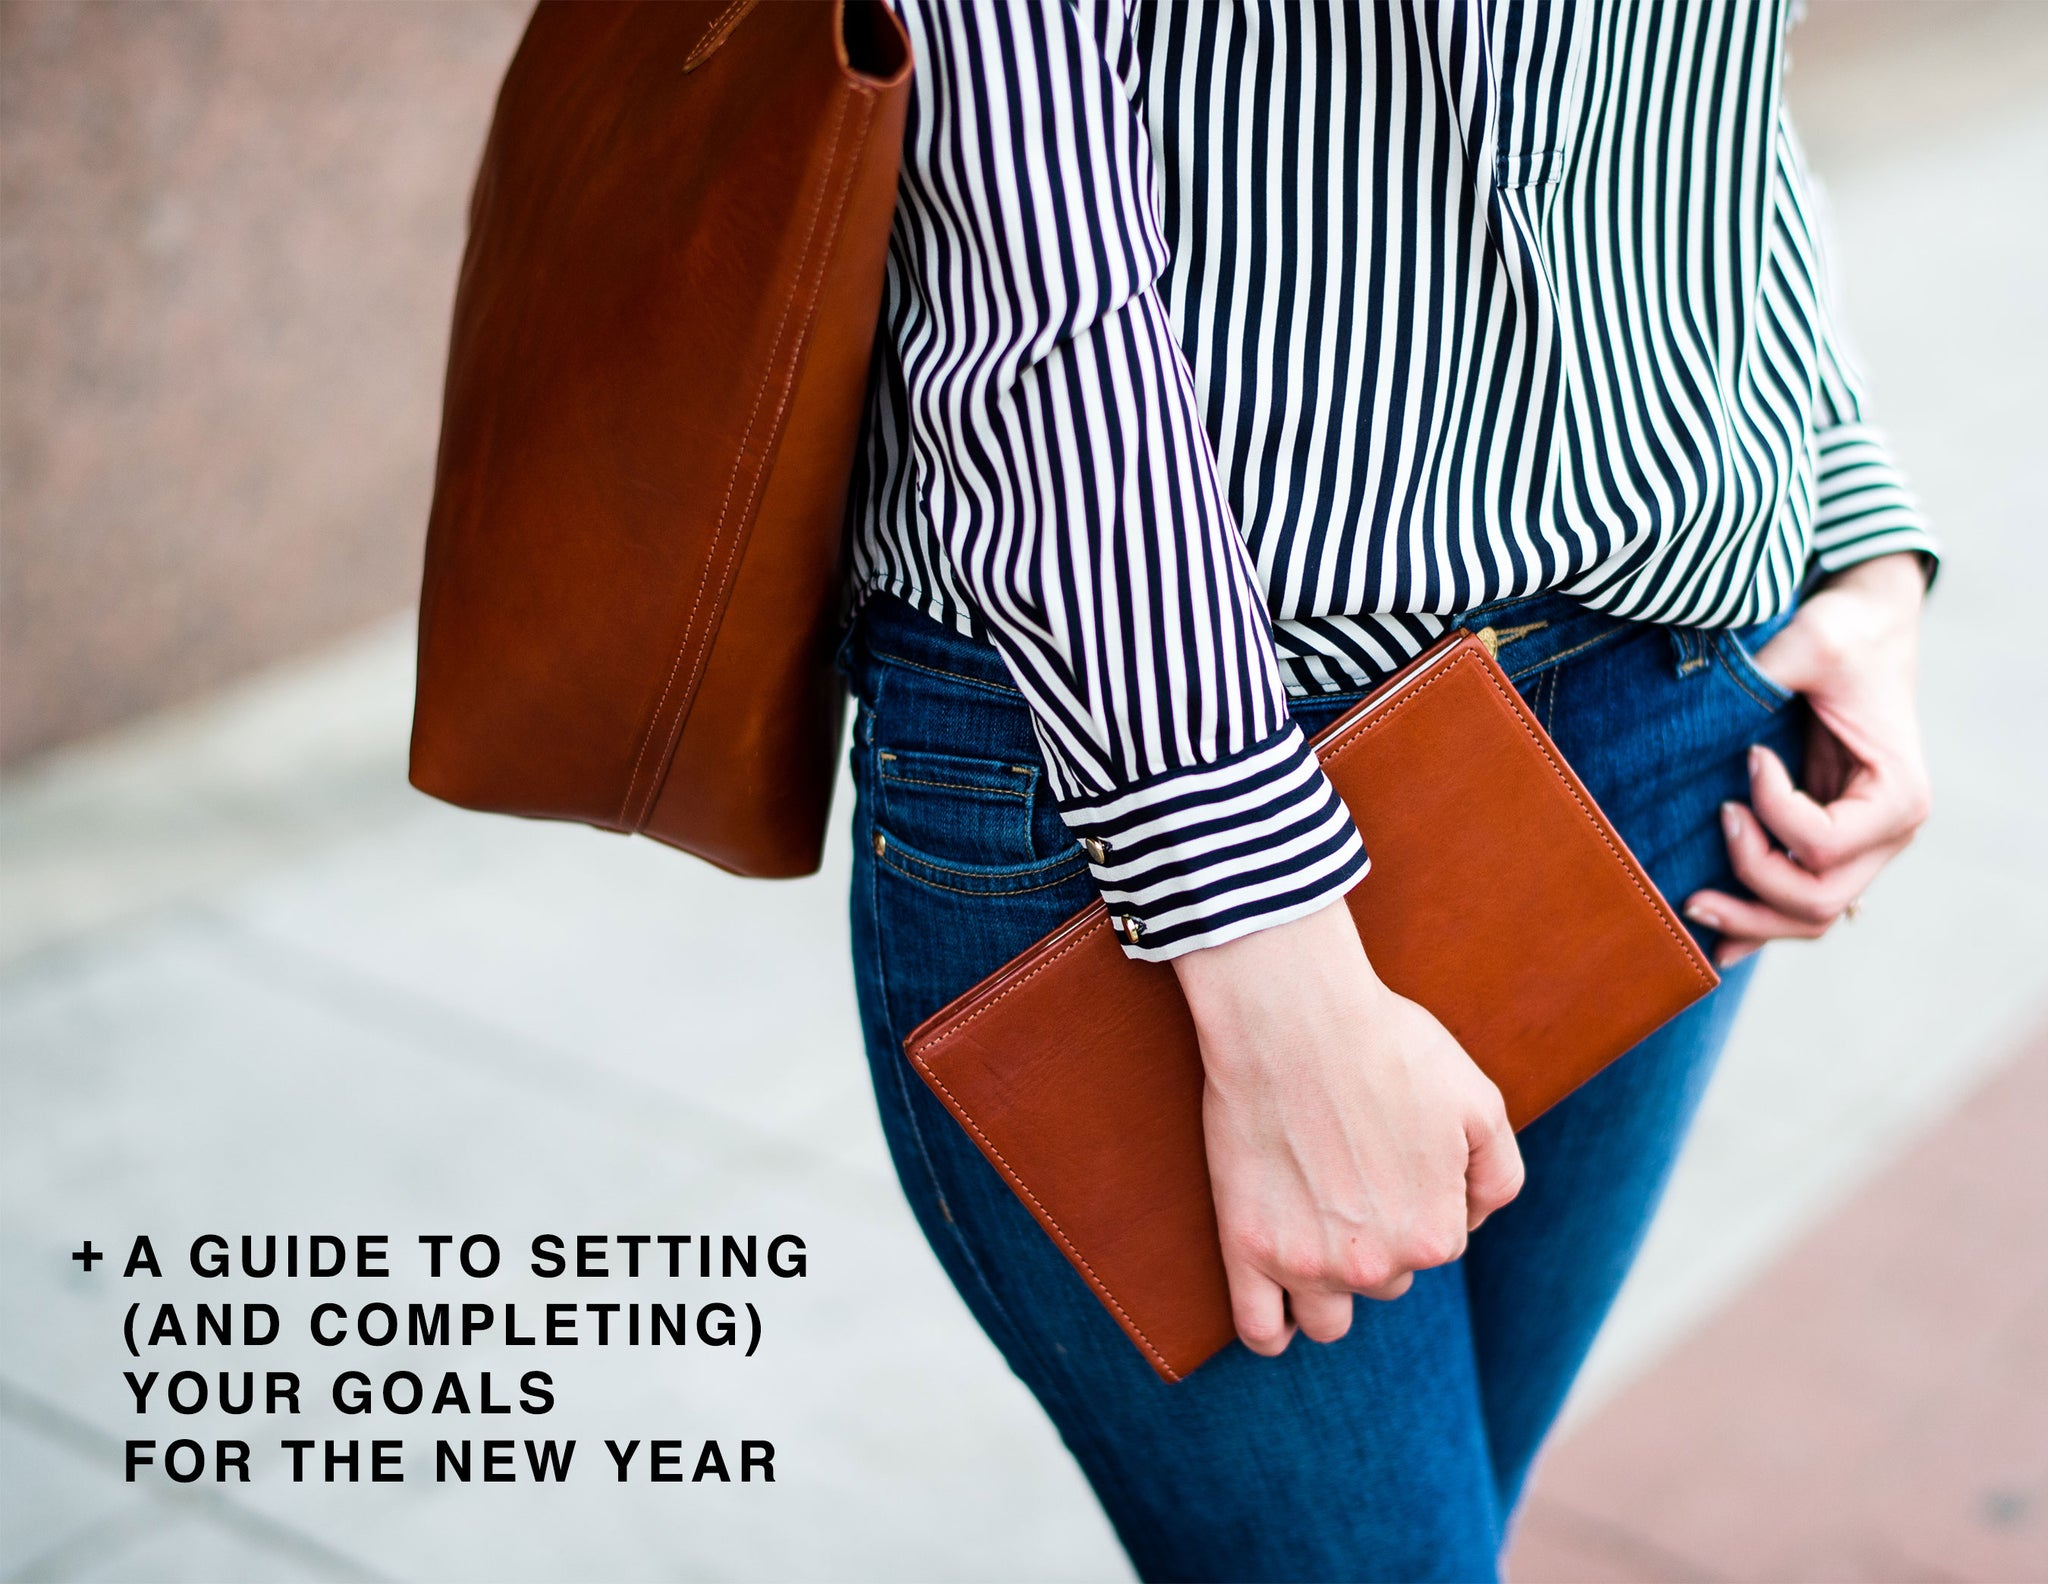 A Guide to Setting (and Completing) Your Goals for the New Year